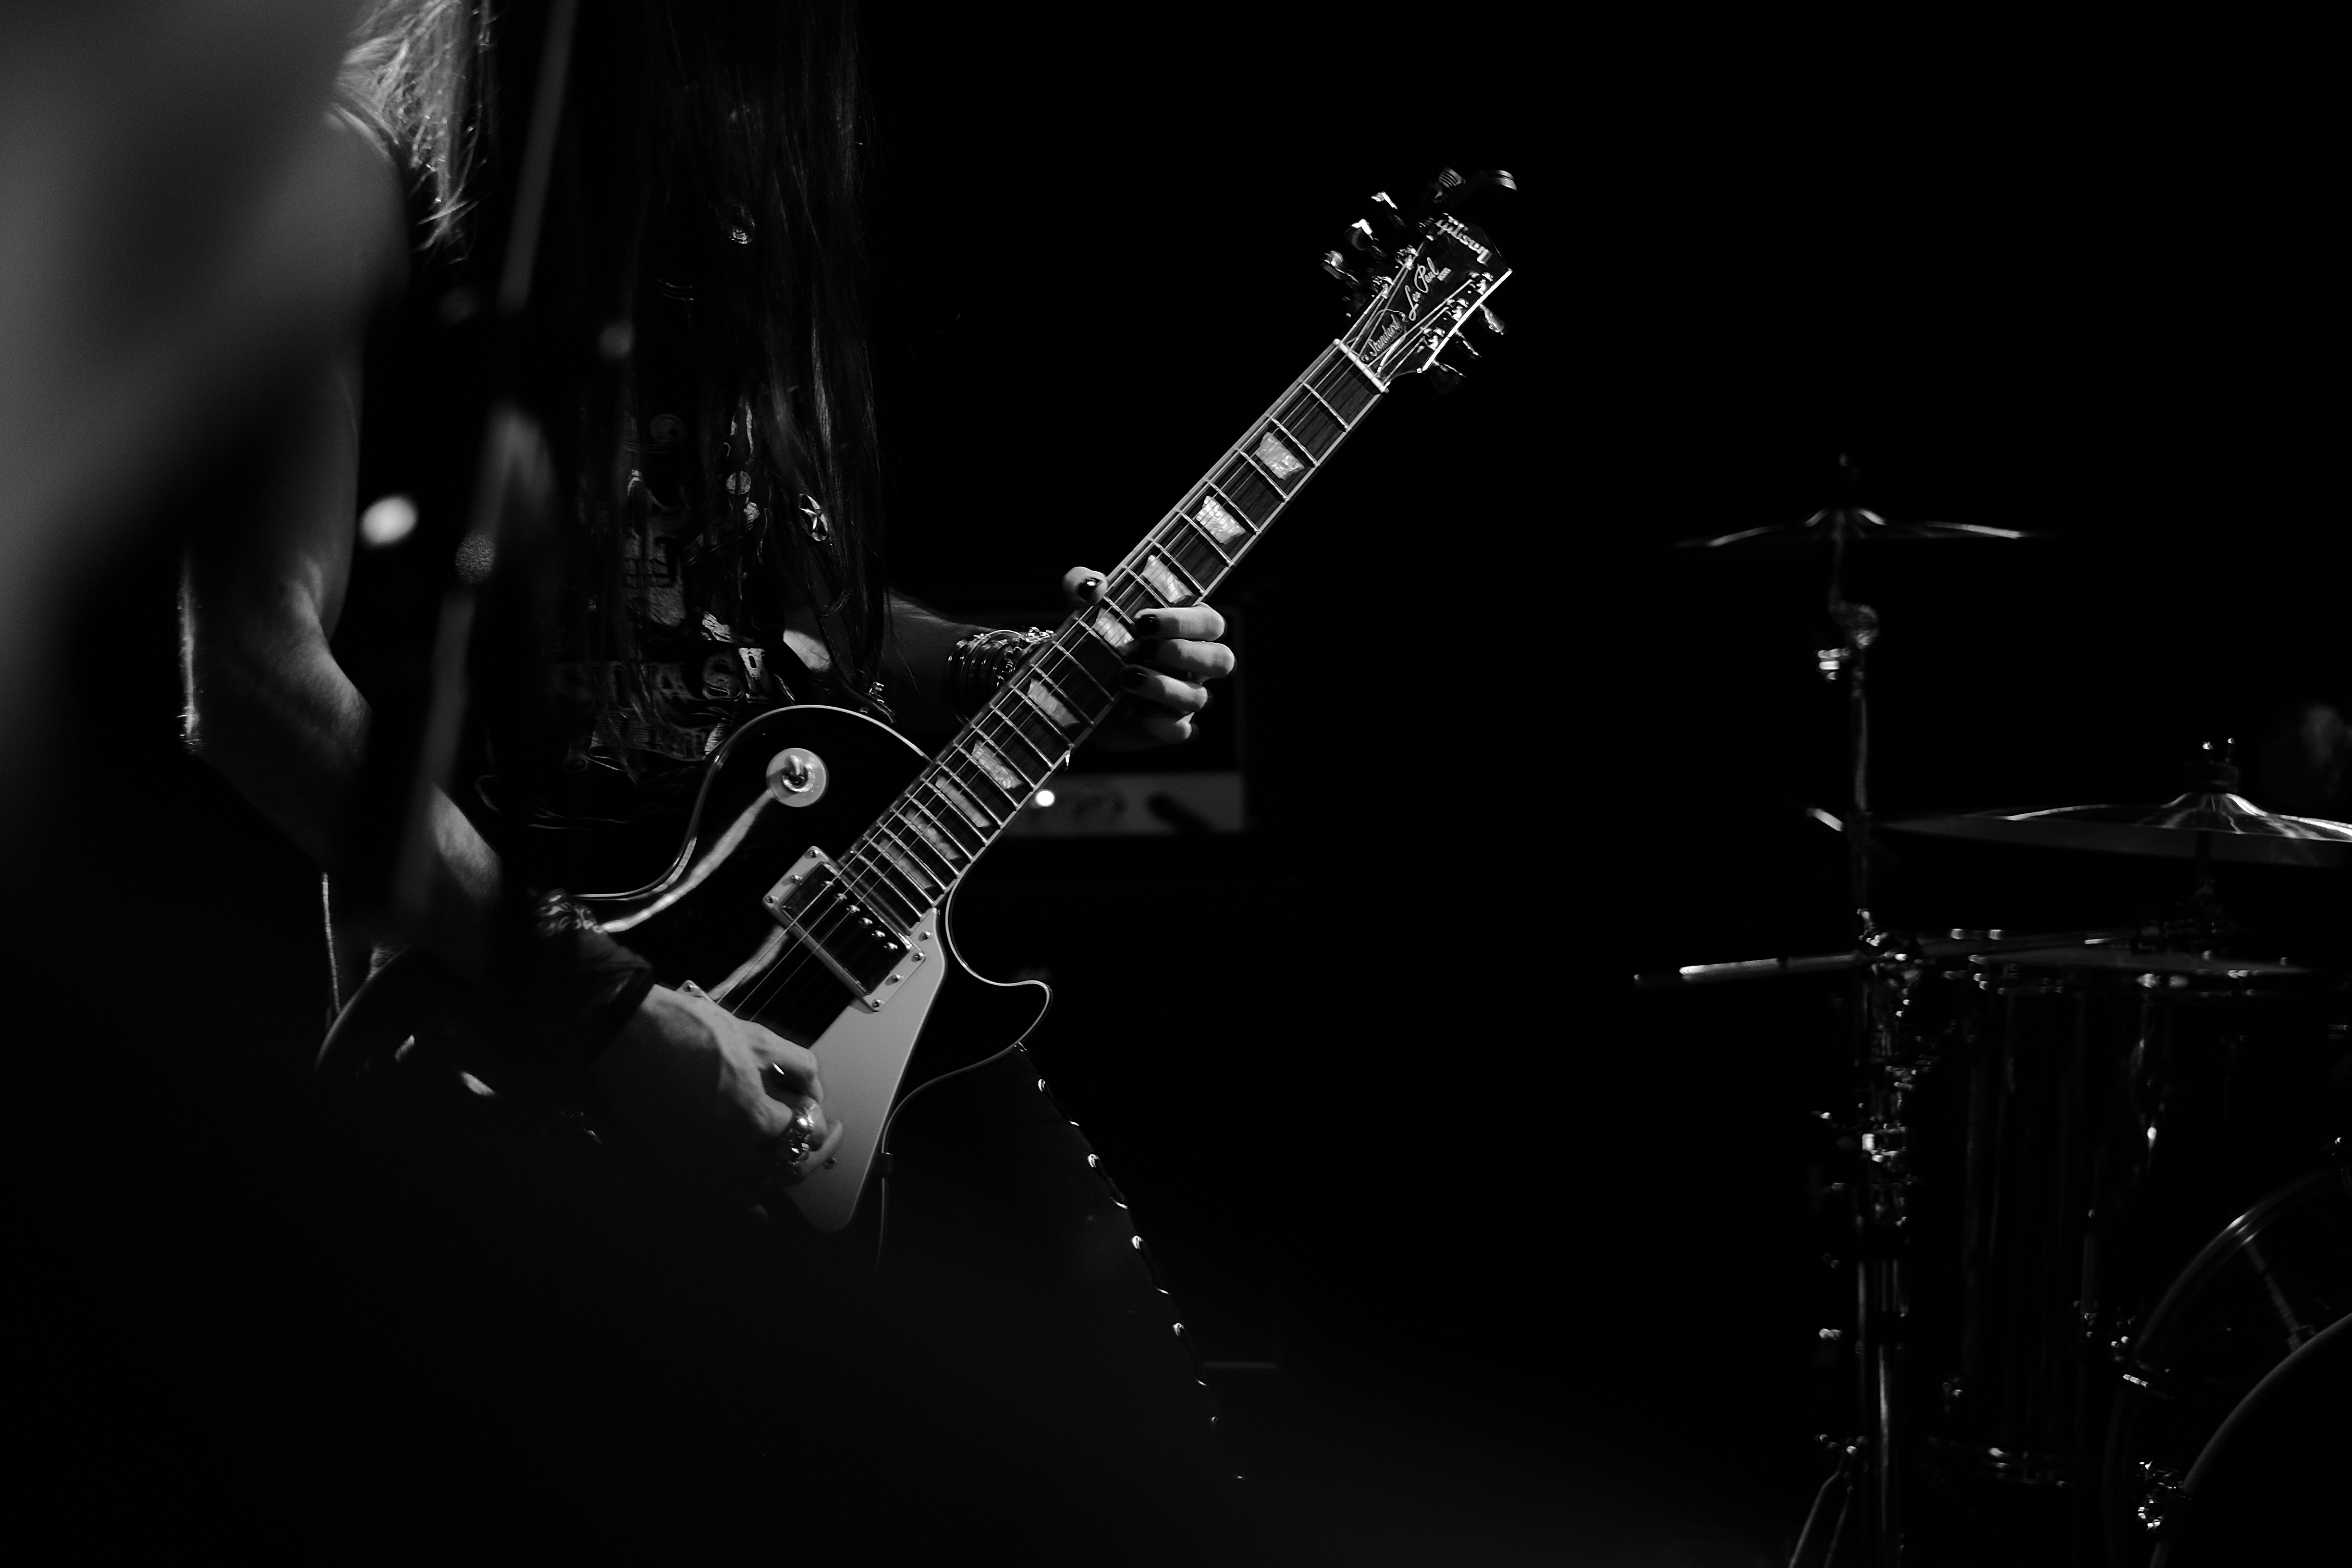 109234 Screensavers and Wallpapers Bw for phone. Download Music, Guitar, Bw, Chb, Musician, Guitar Player, Guitarist pictures for free